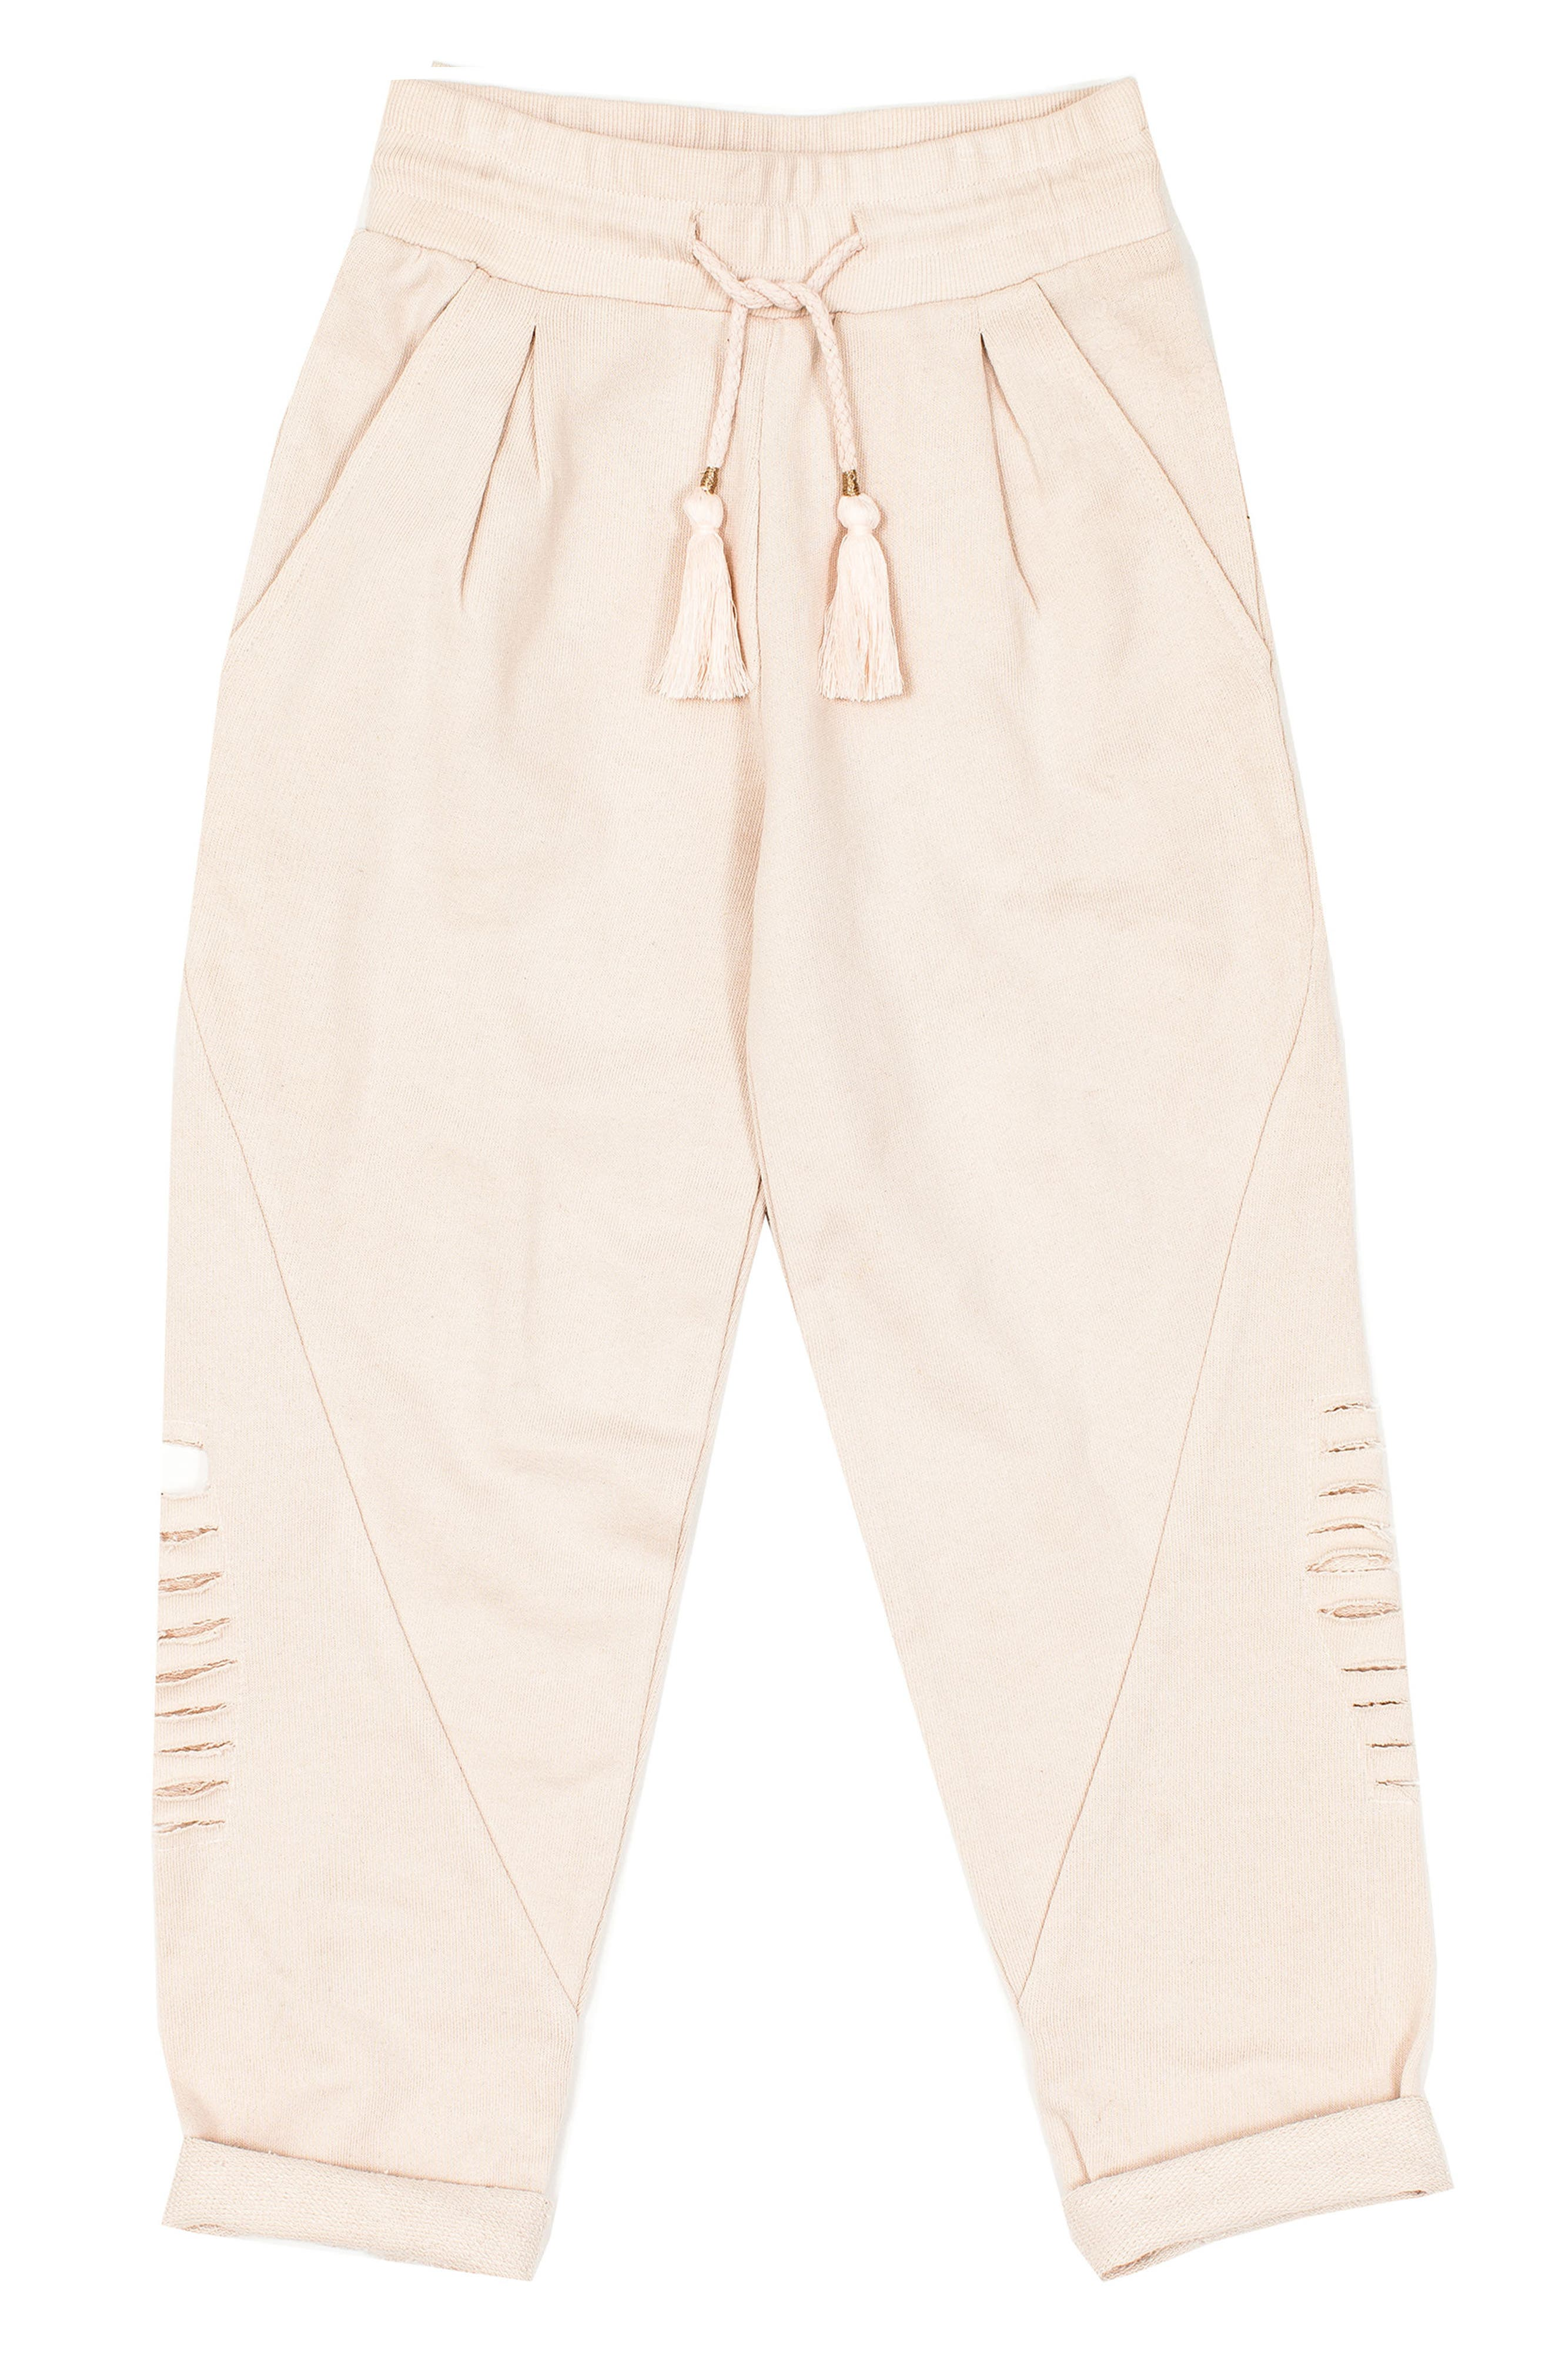 Alchemy Distressed Sweatpants,                         Main,                         color, Stardust